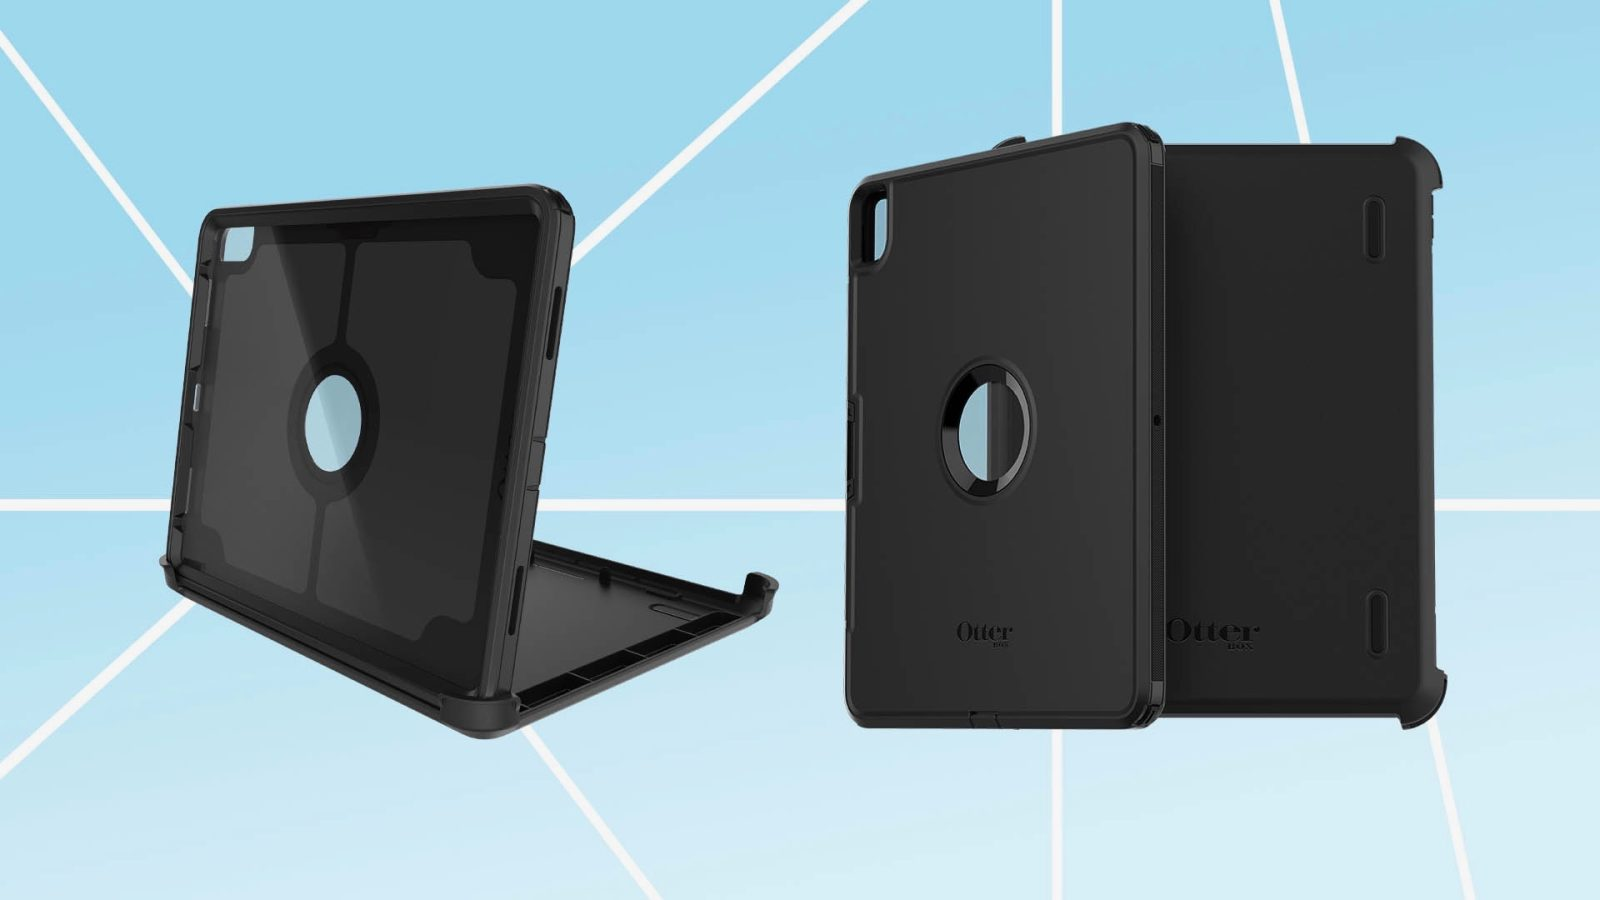 New Otterbox Defender case for the 11- and 12 9-inch iPad